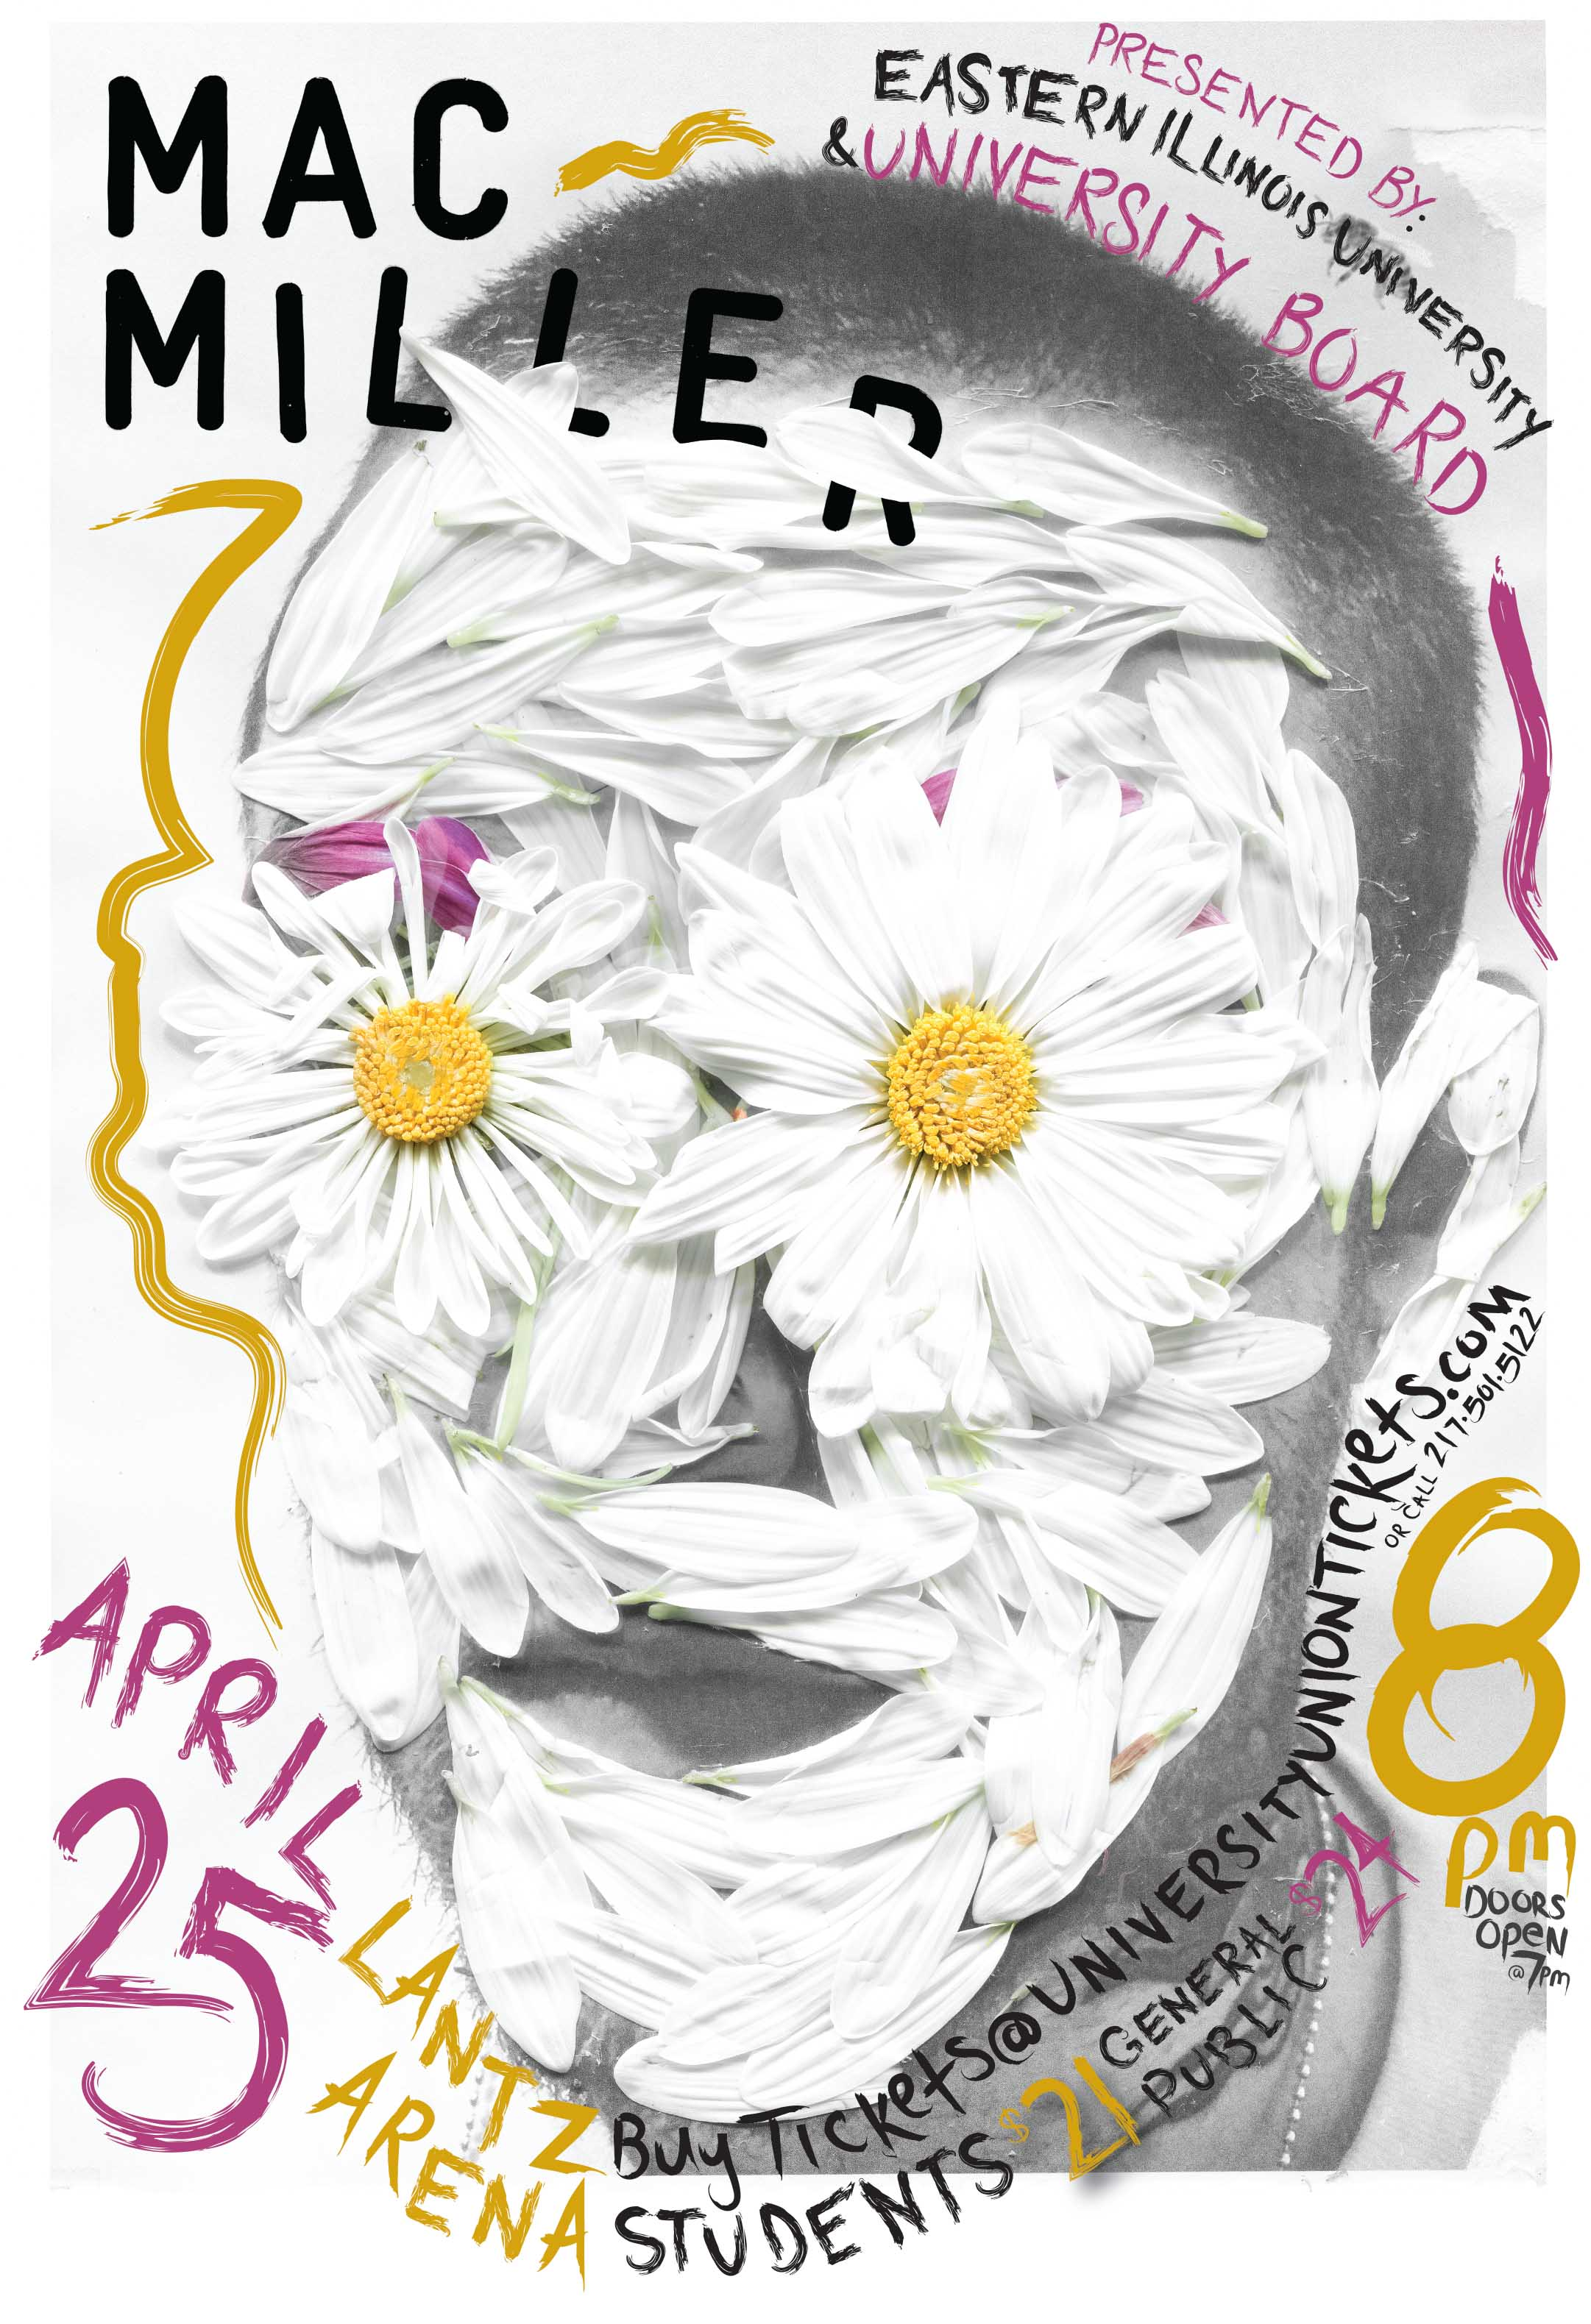 Poster design mac - Concert Poster Design For Mac Miller At Eastern Illinois University The Image With The Flower